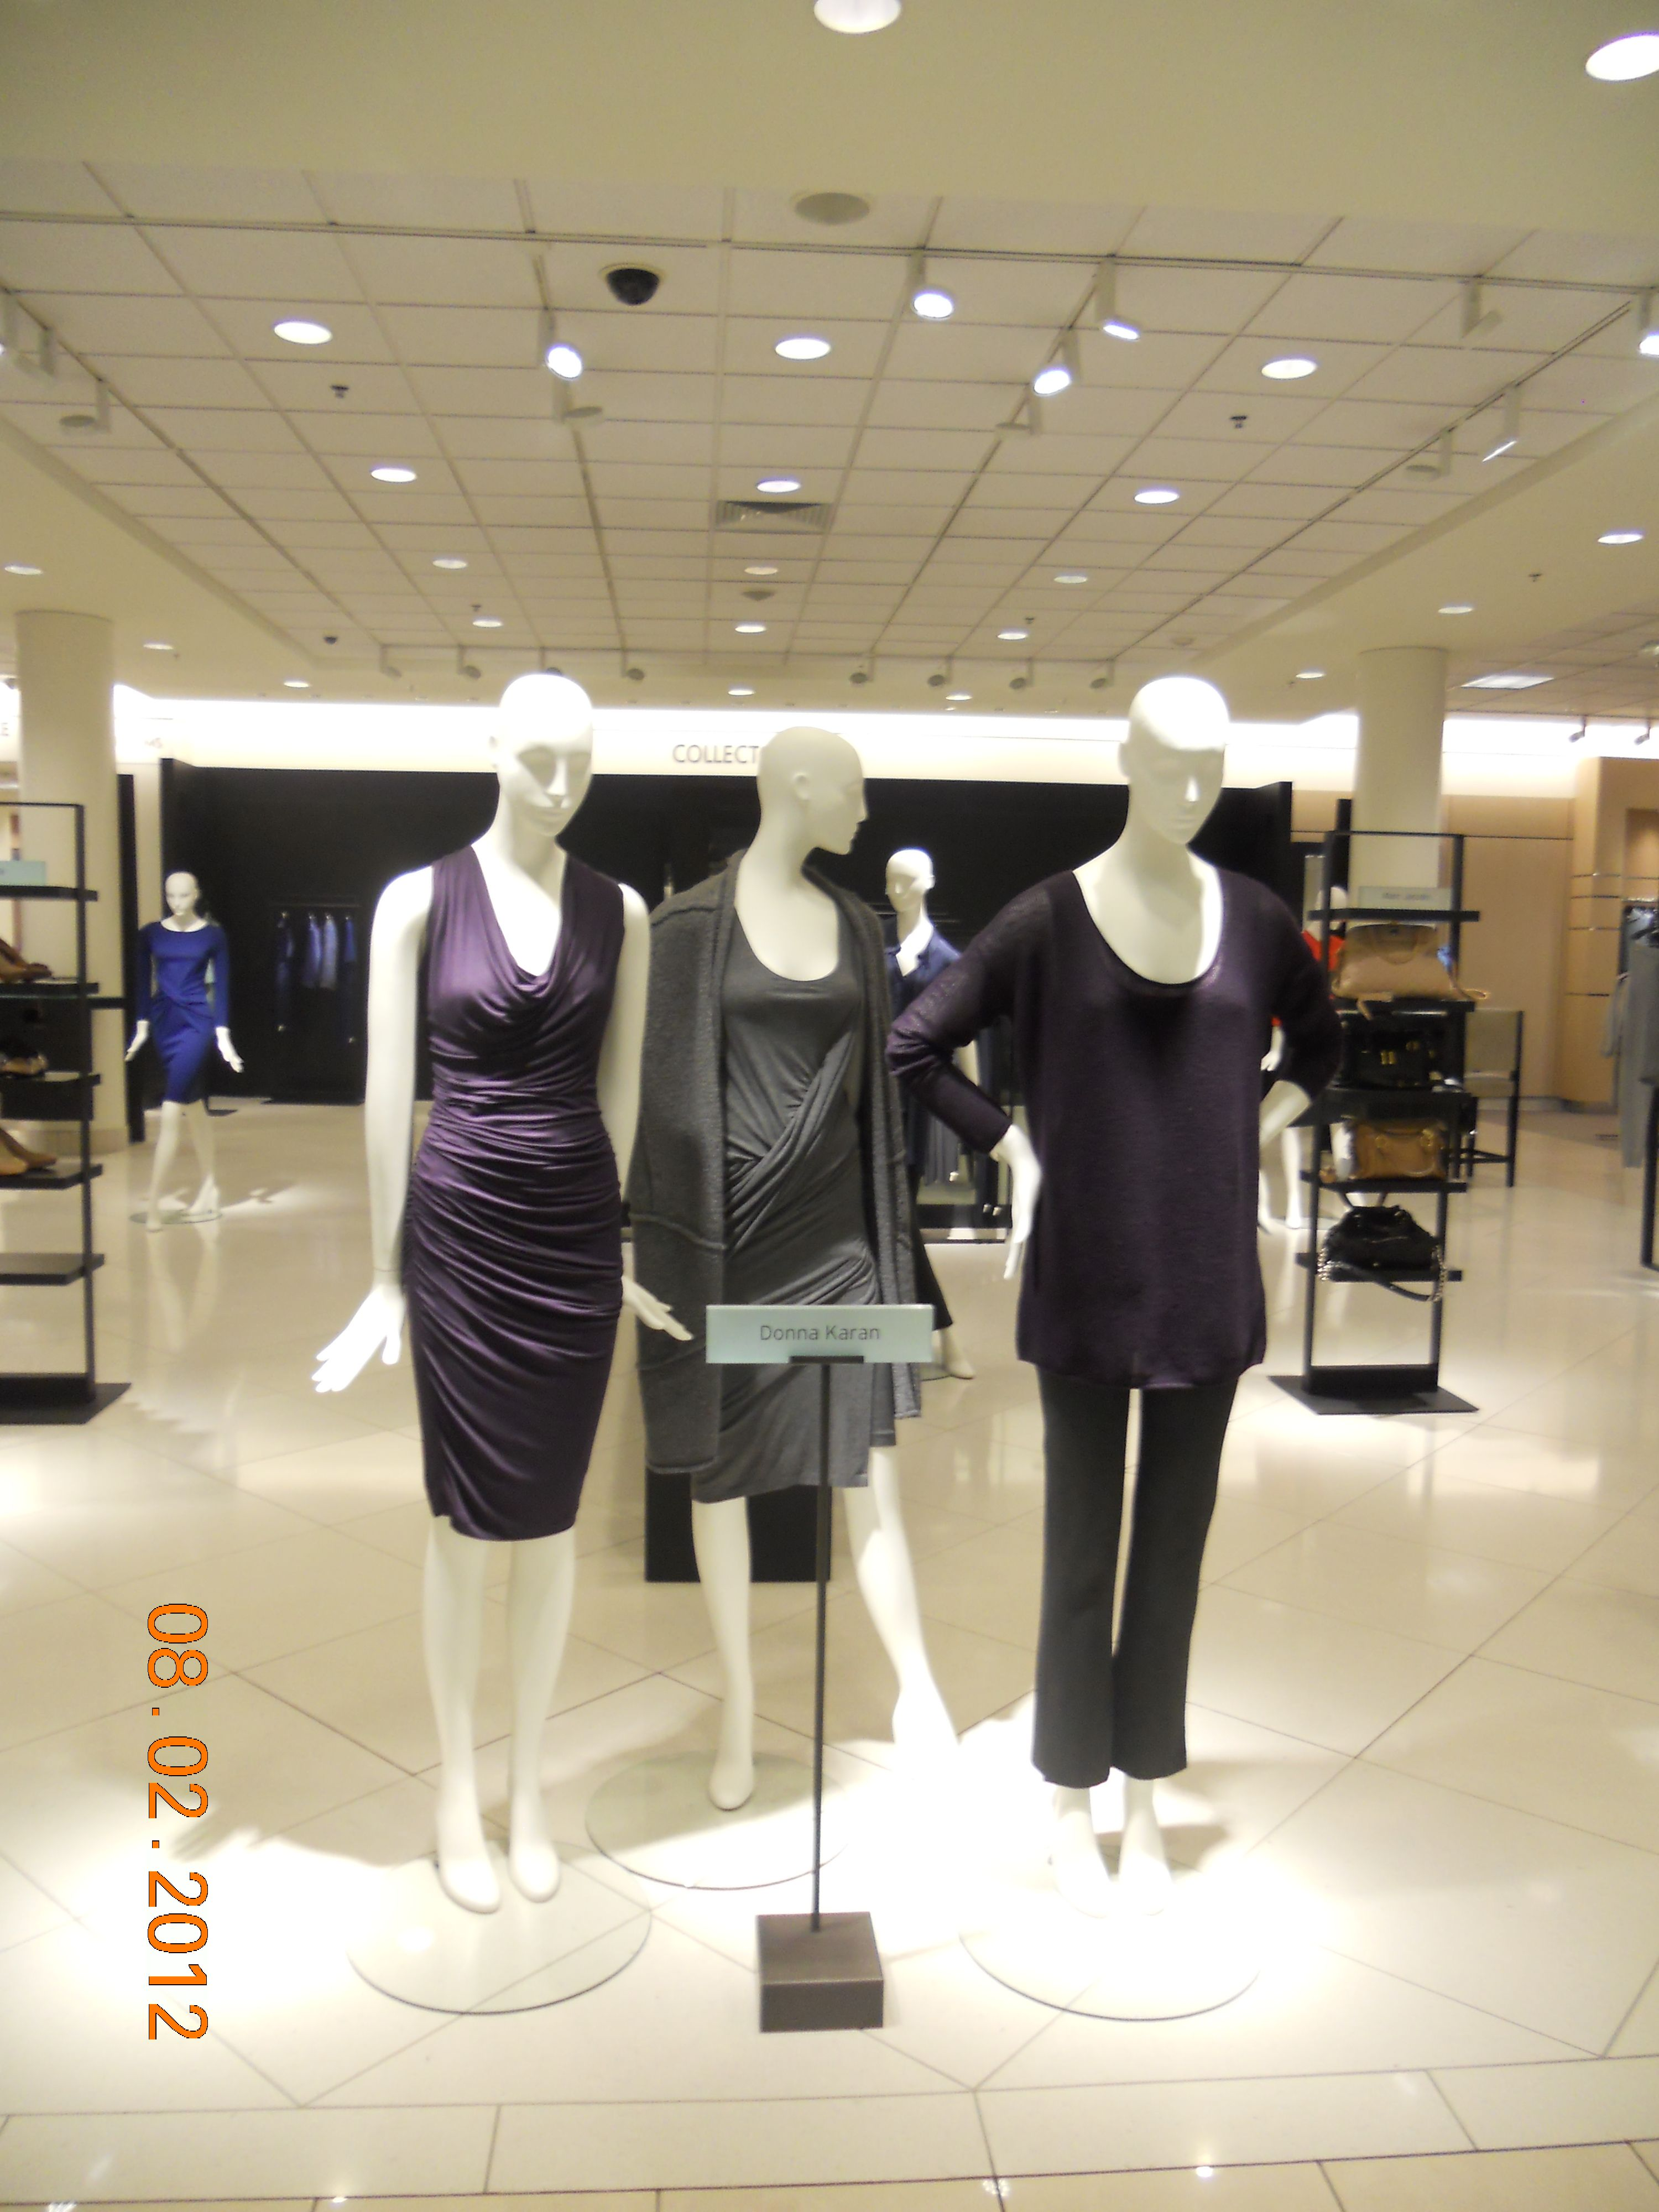 #DonnaKaran display #Nordstrom  #SouthParkMall in Charlotte, NC